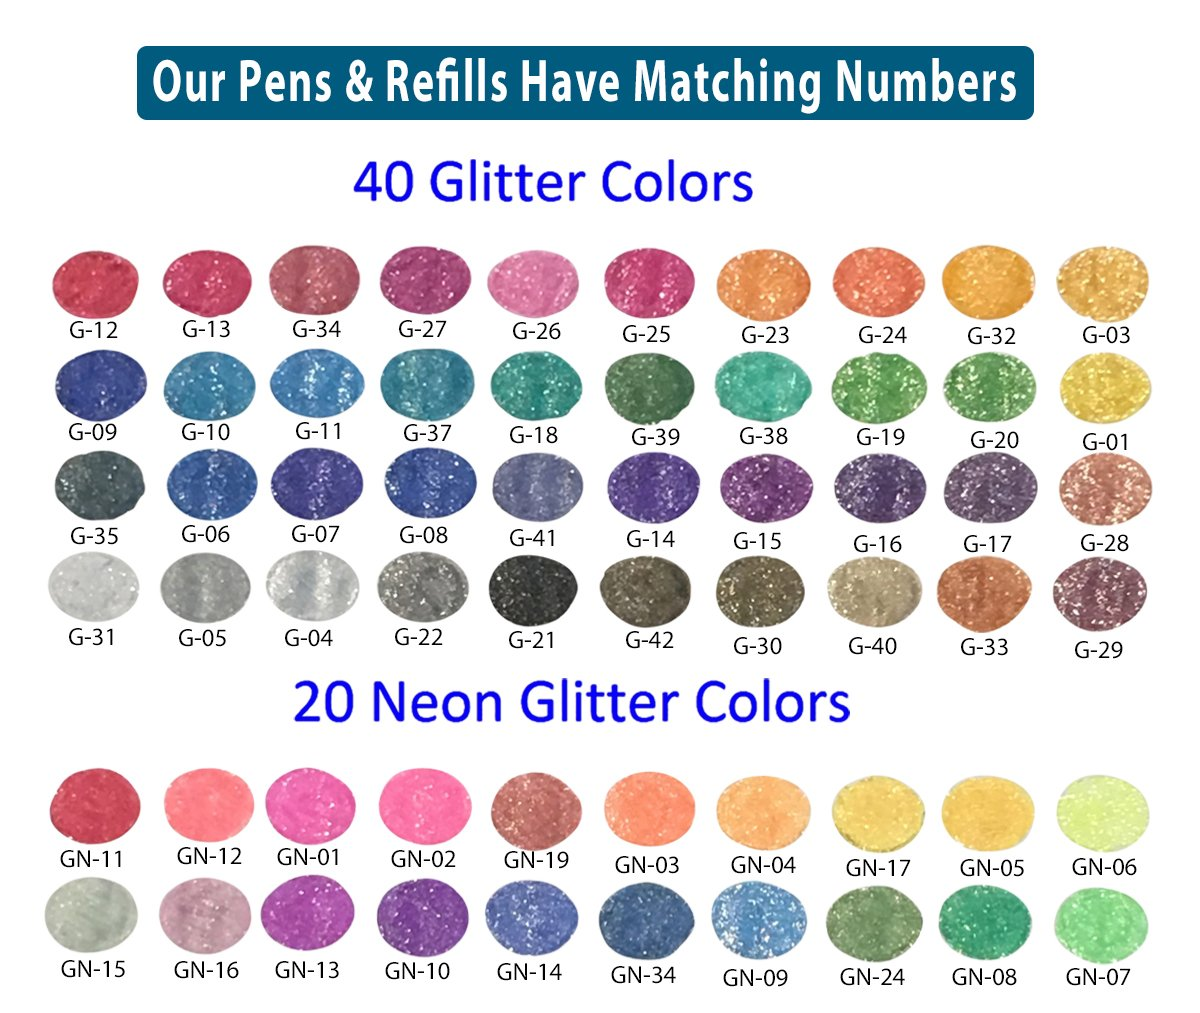 My Color Store 120 Glitter Gel Pens Set, 60 Glitter Pens + 60 Refills, Fold-able Case + Gift Box by Overseas Publishers Representatives (Image #5)